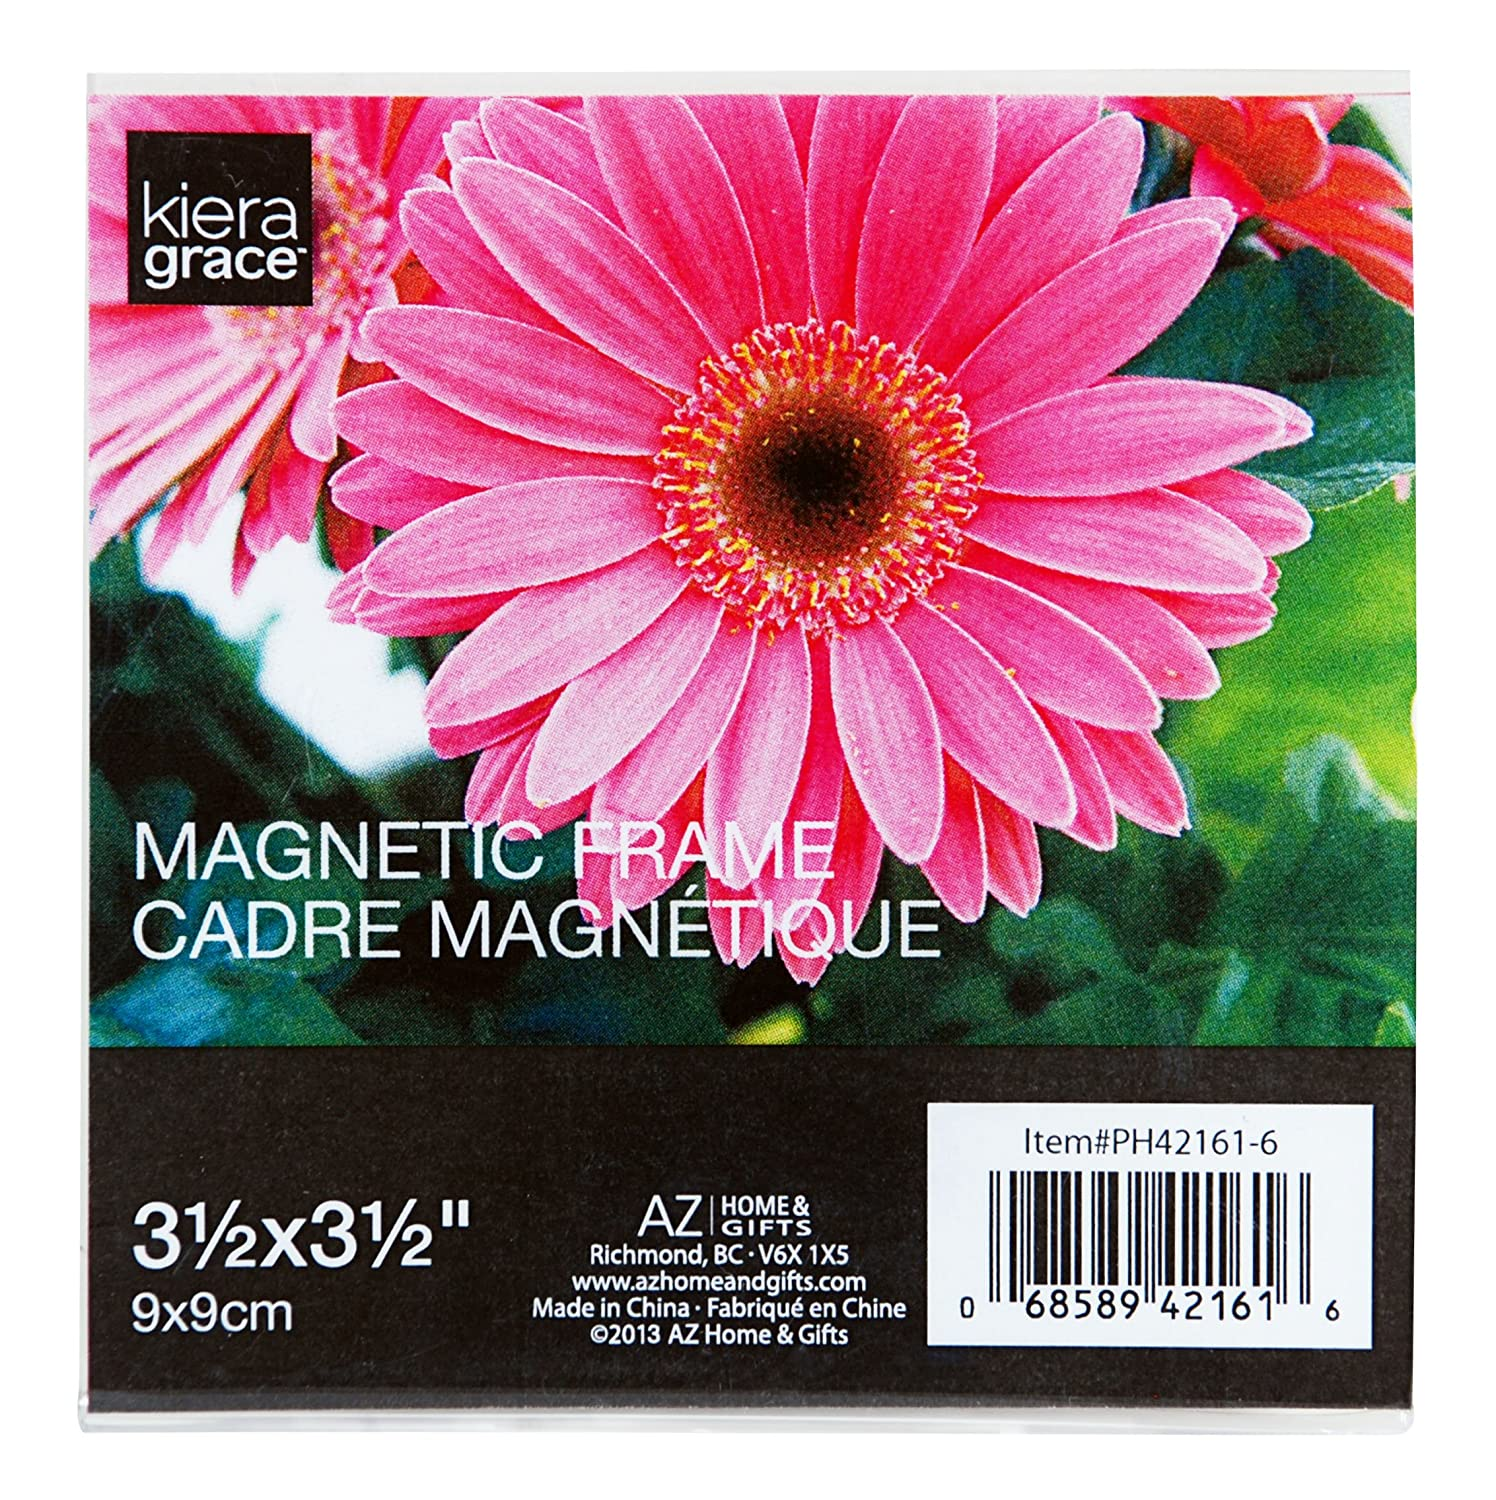 Kiera Grace Magnetic Picture Frame with Square Frosted Edge, 3.5 x 3.5 Inch, Clear AZ Home and Gifts PH42161-6